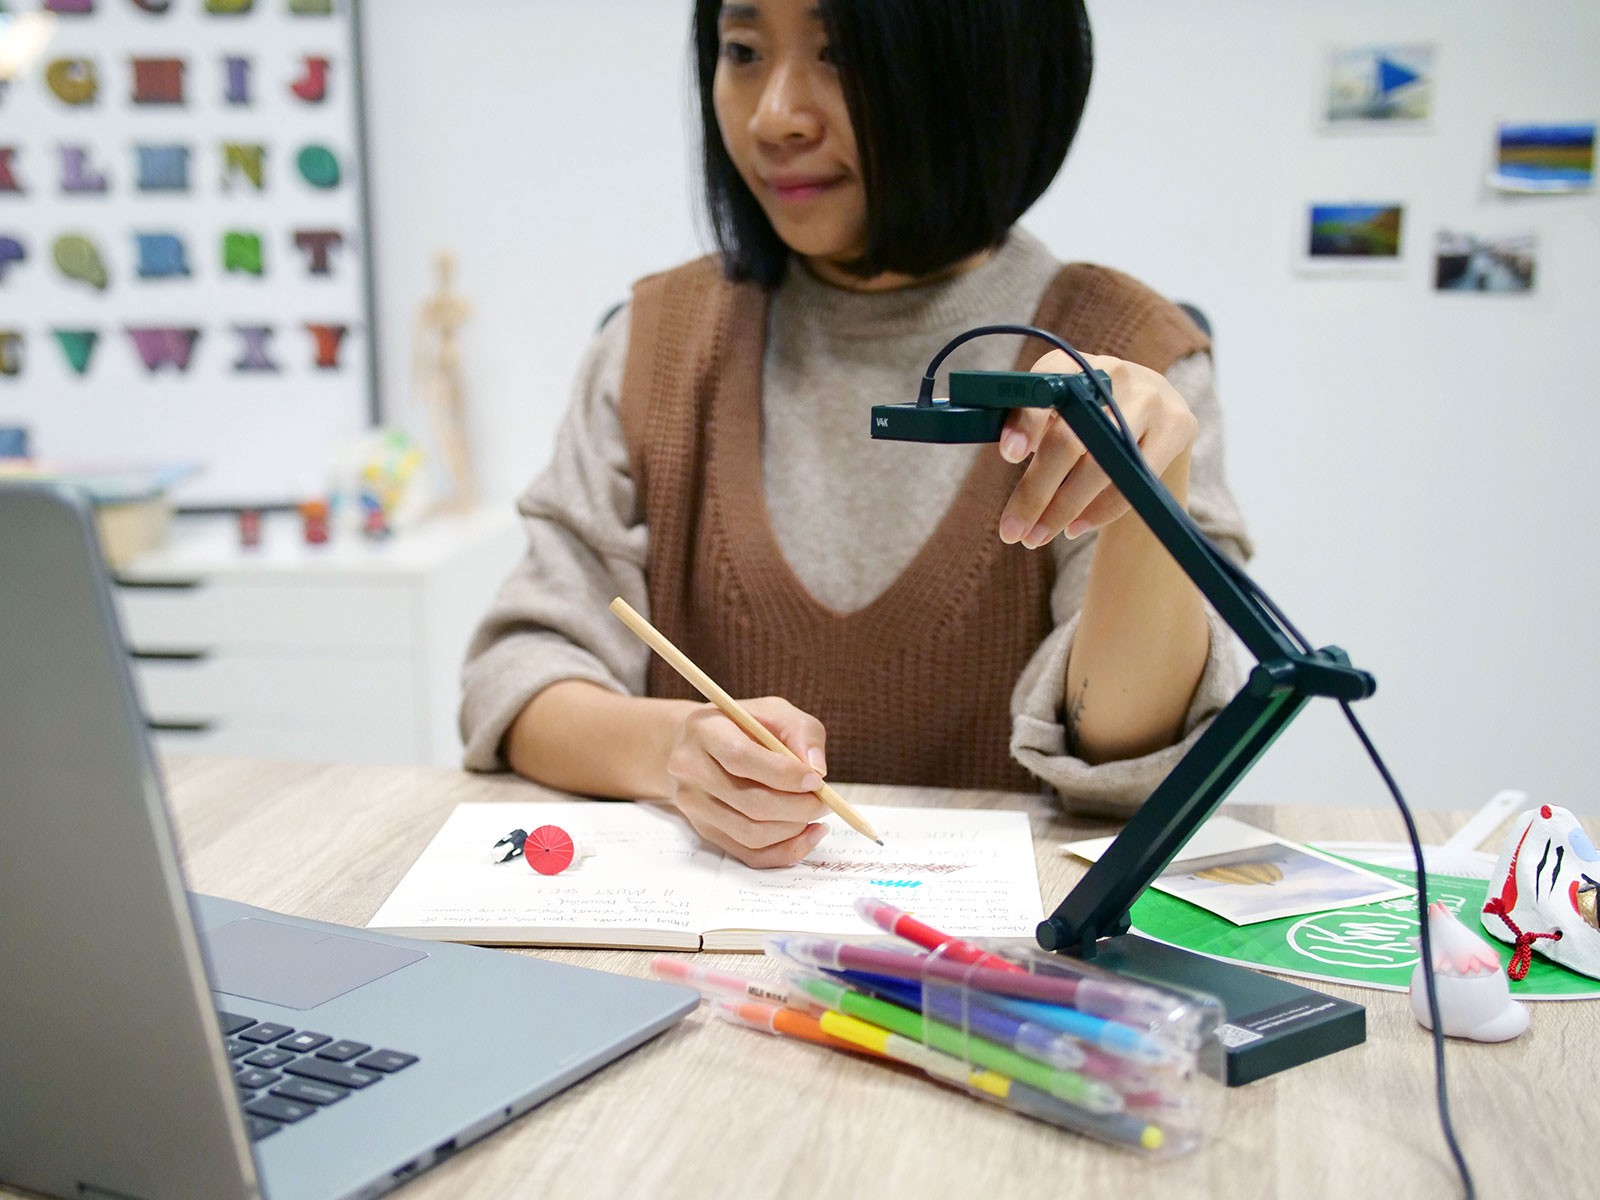 Adjusting an IPEVO V4K document camera to get the perfect shot.